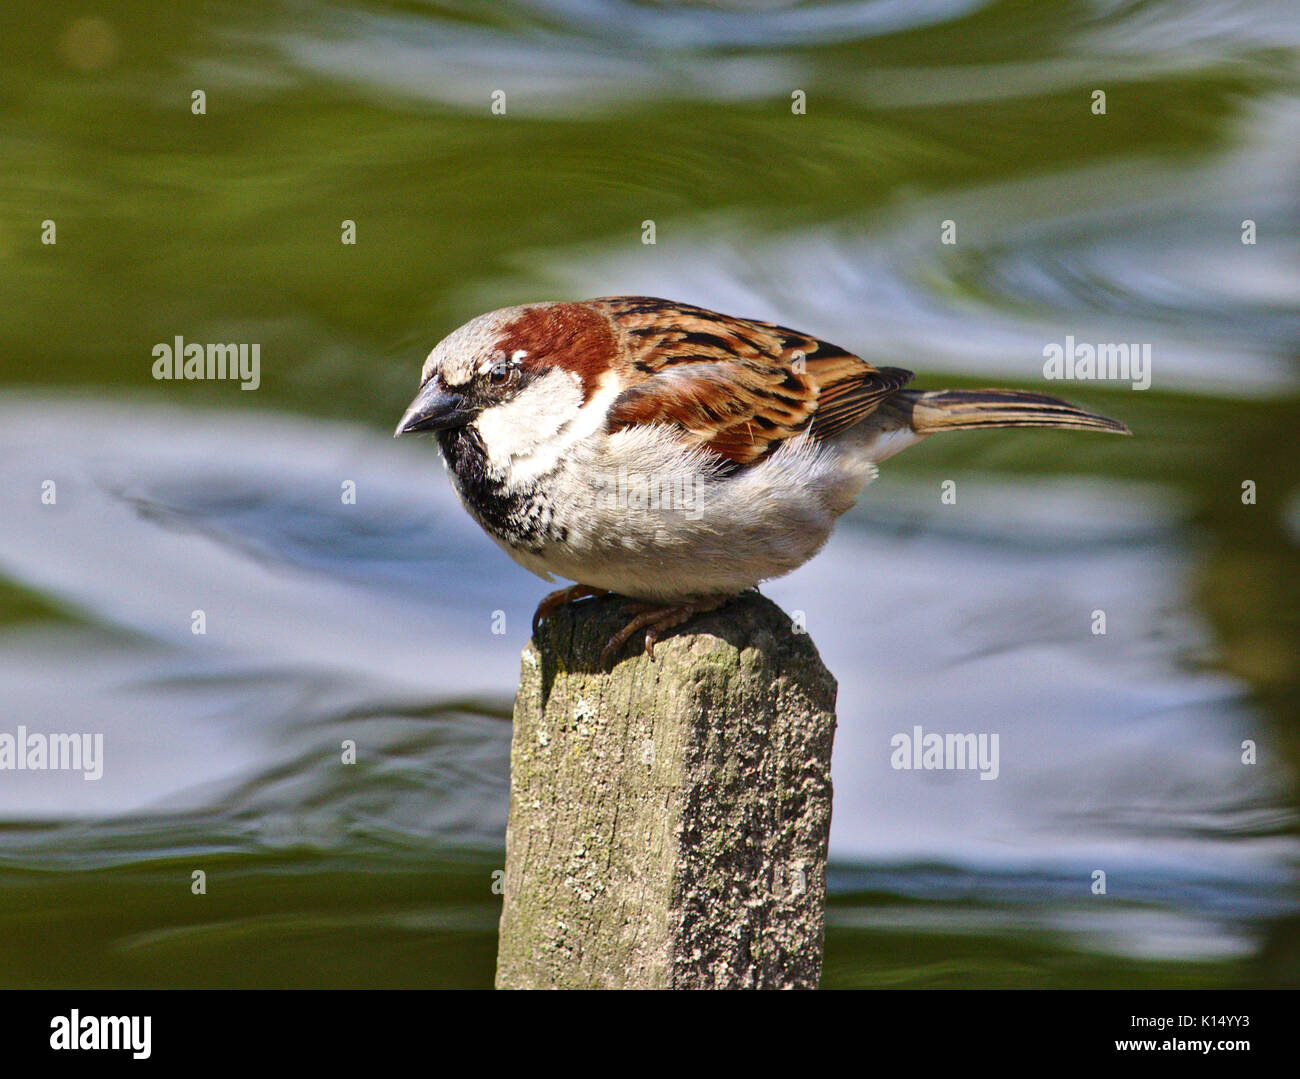 House sparrow perched on a fence post with a running stream in the background - Stock Image